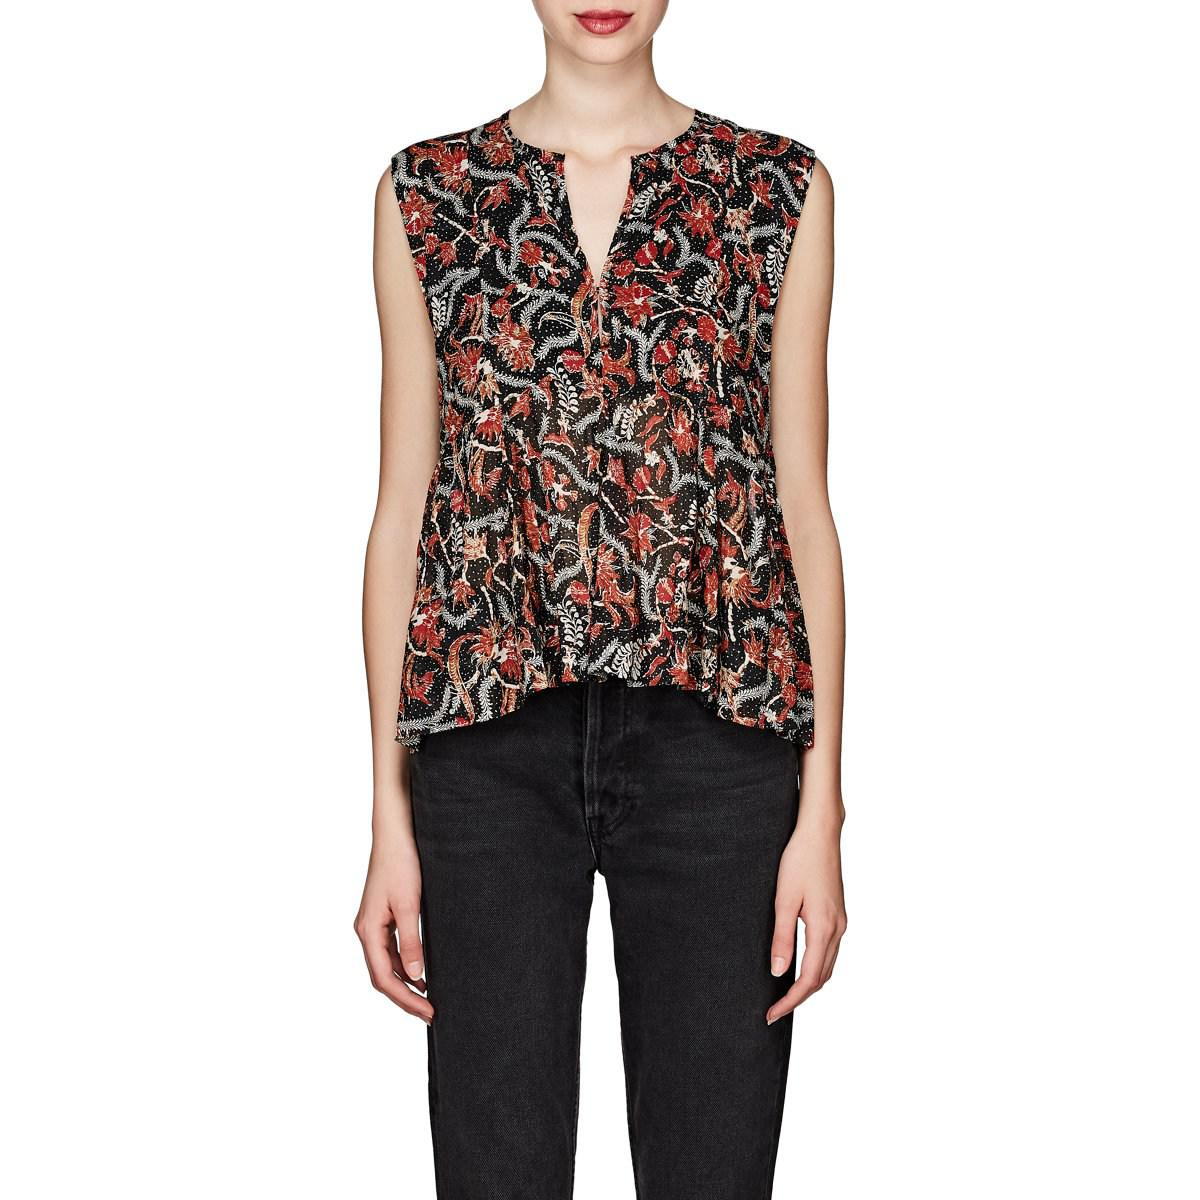 008a51cea94b20 Lyst - Étoile Isabel Marant Erney Floral Cotton Peplum Top in Blue